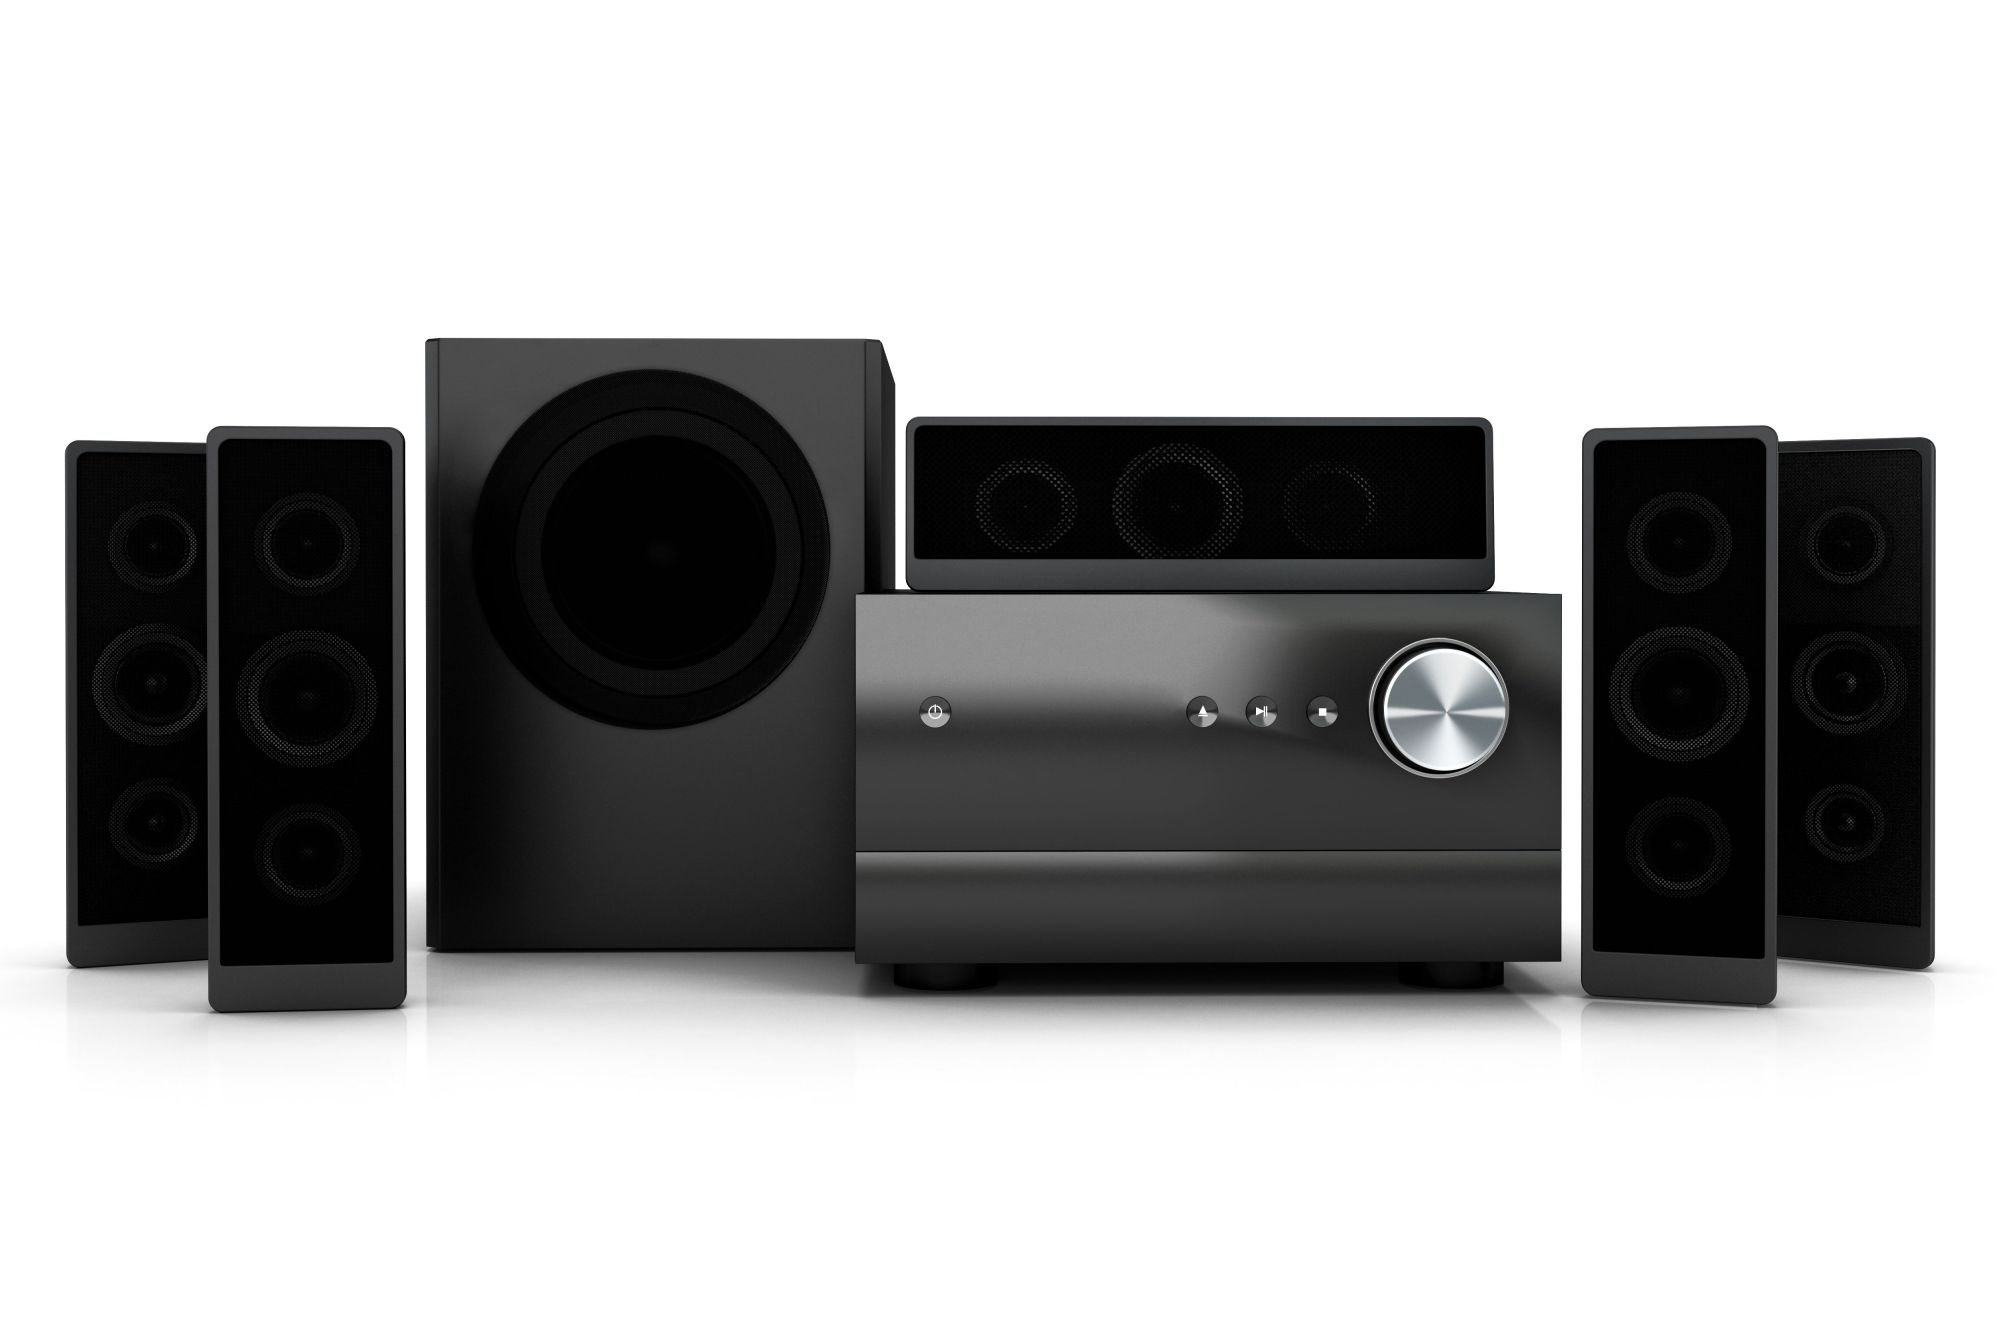 hight resolution of compact home theater system